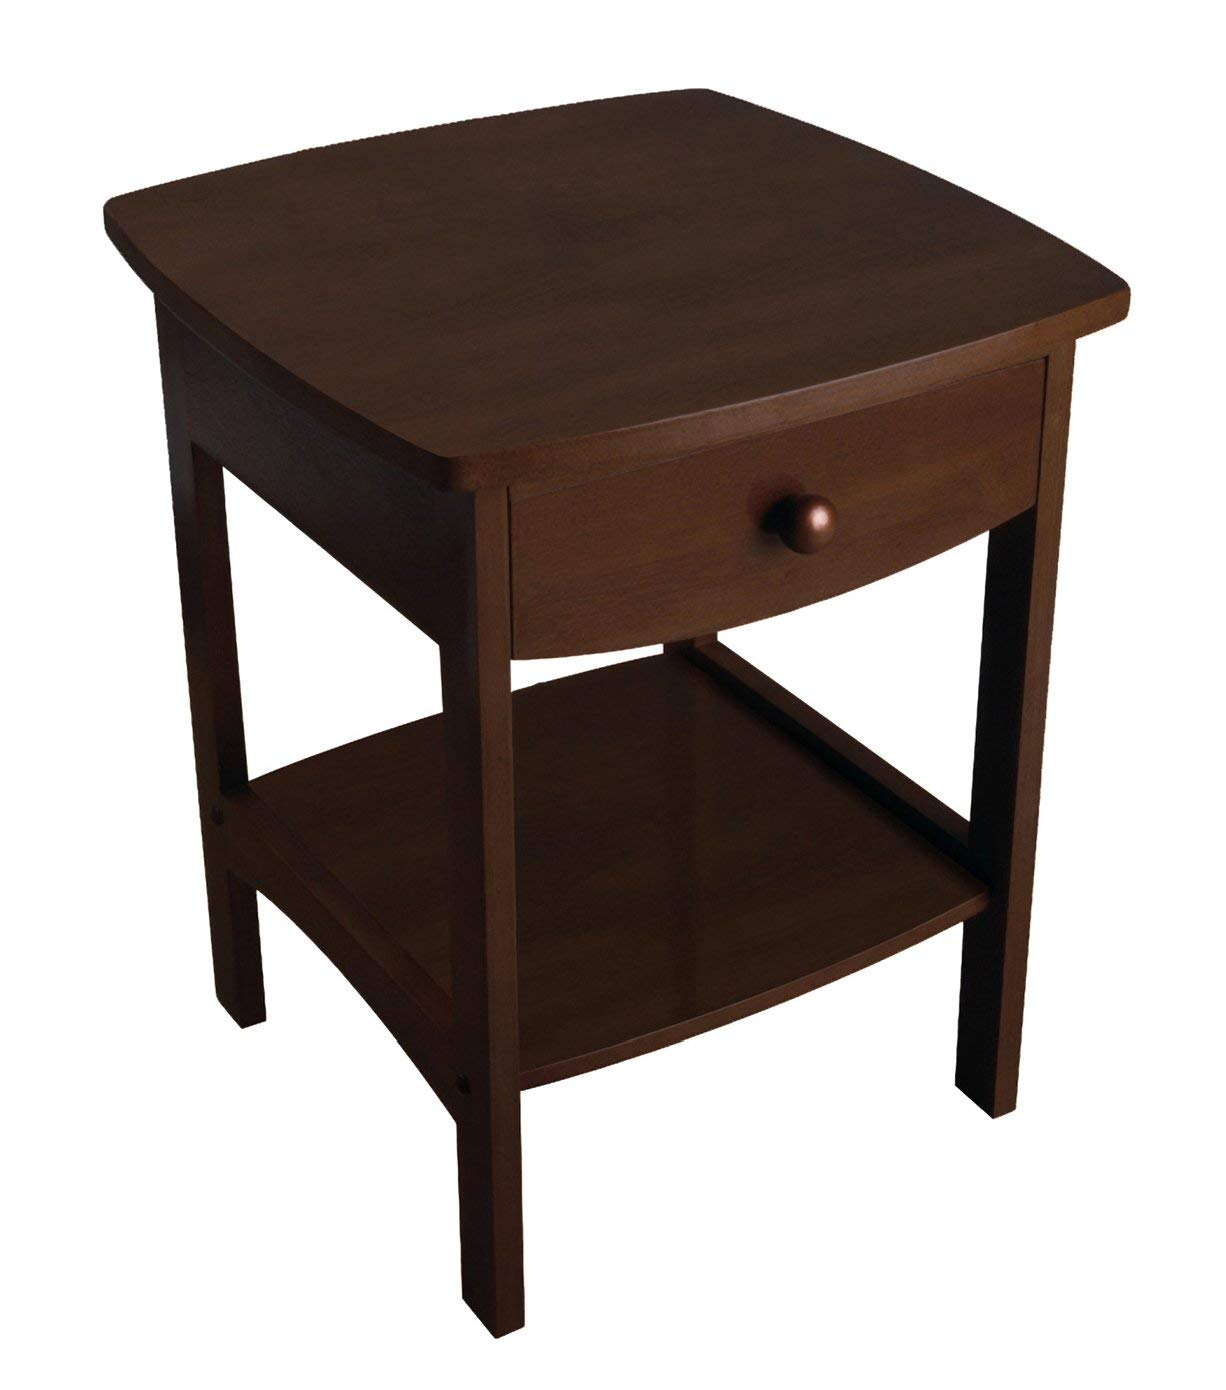 winsome wood claire accent table walnut kitchen beechwood end espresso dining screw wooden legs best patio furniture tables and chests saskatoon bunnings cushions ikea set bedside